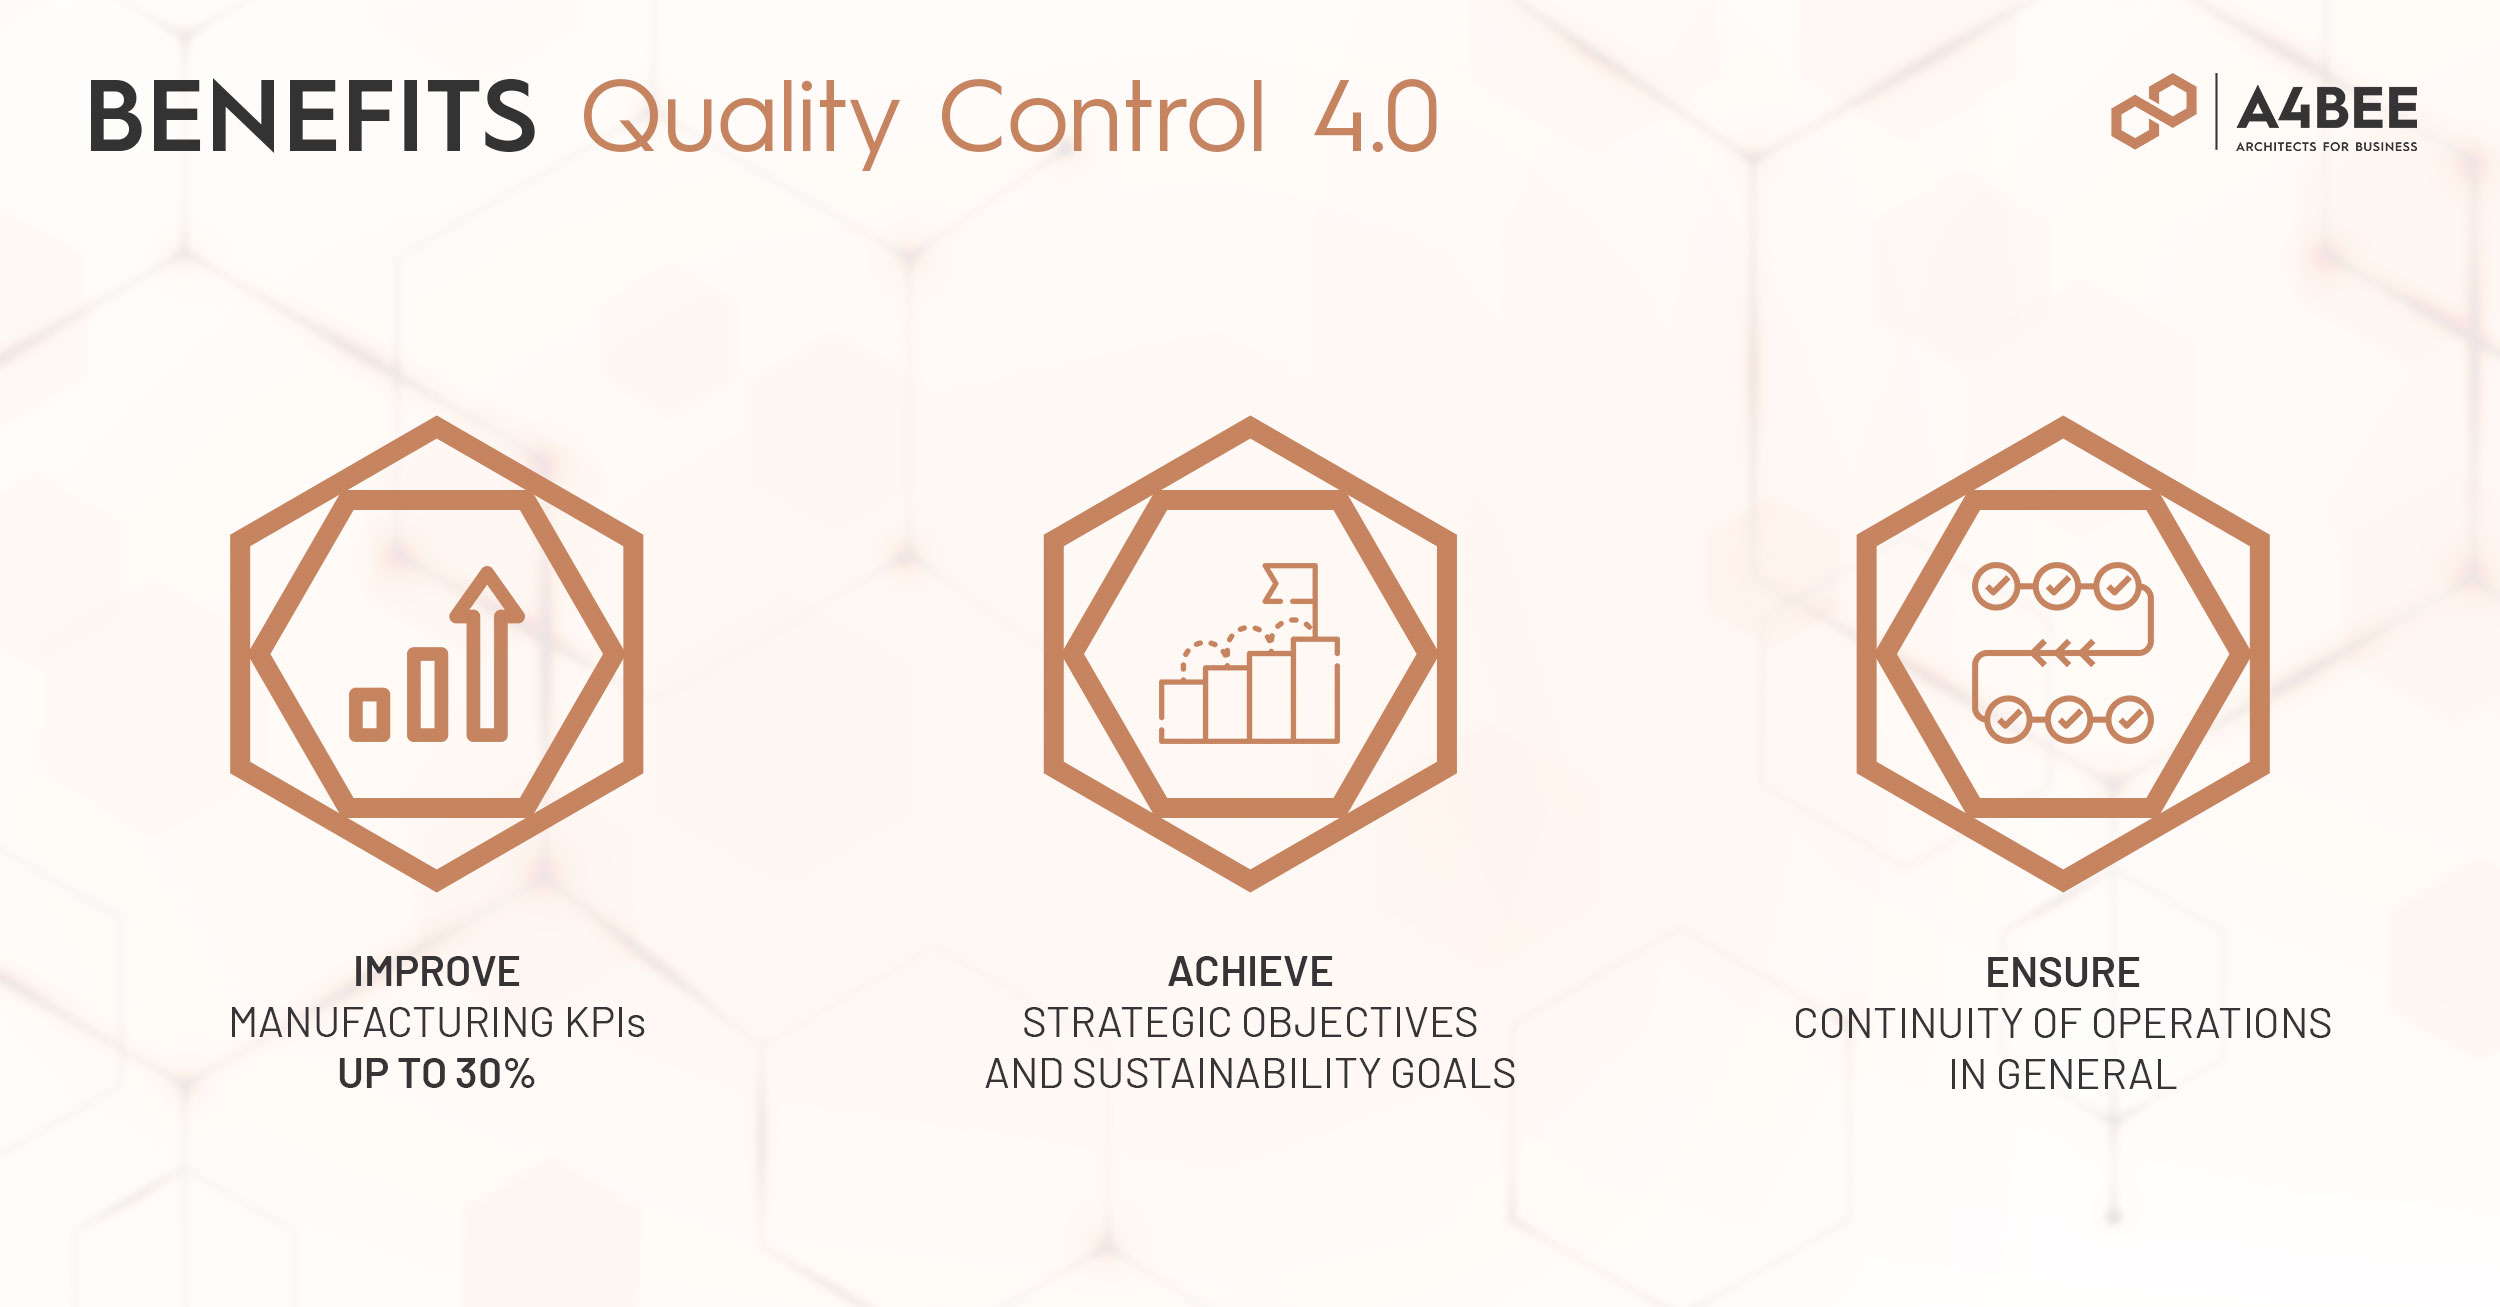 benefits of quality control 4.0